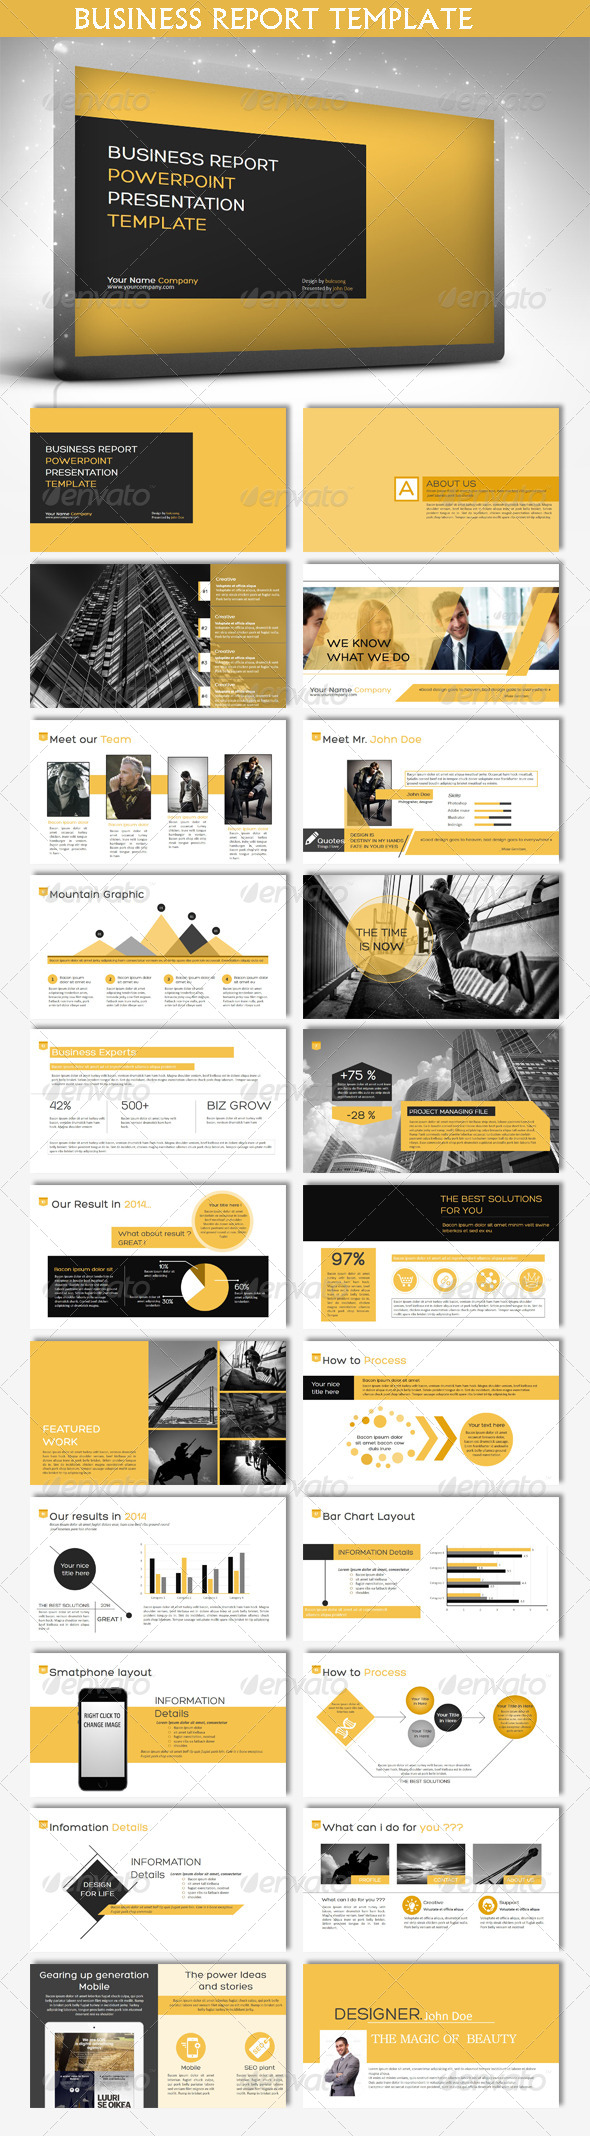 GraphicRiver Business Report Powerpoint Template 6816898